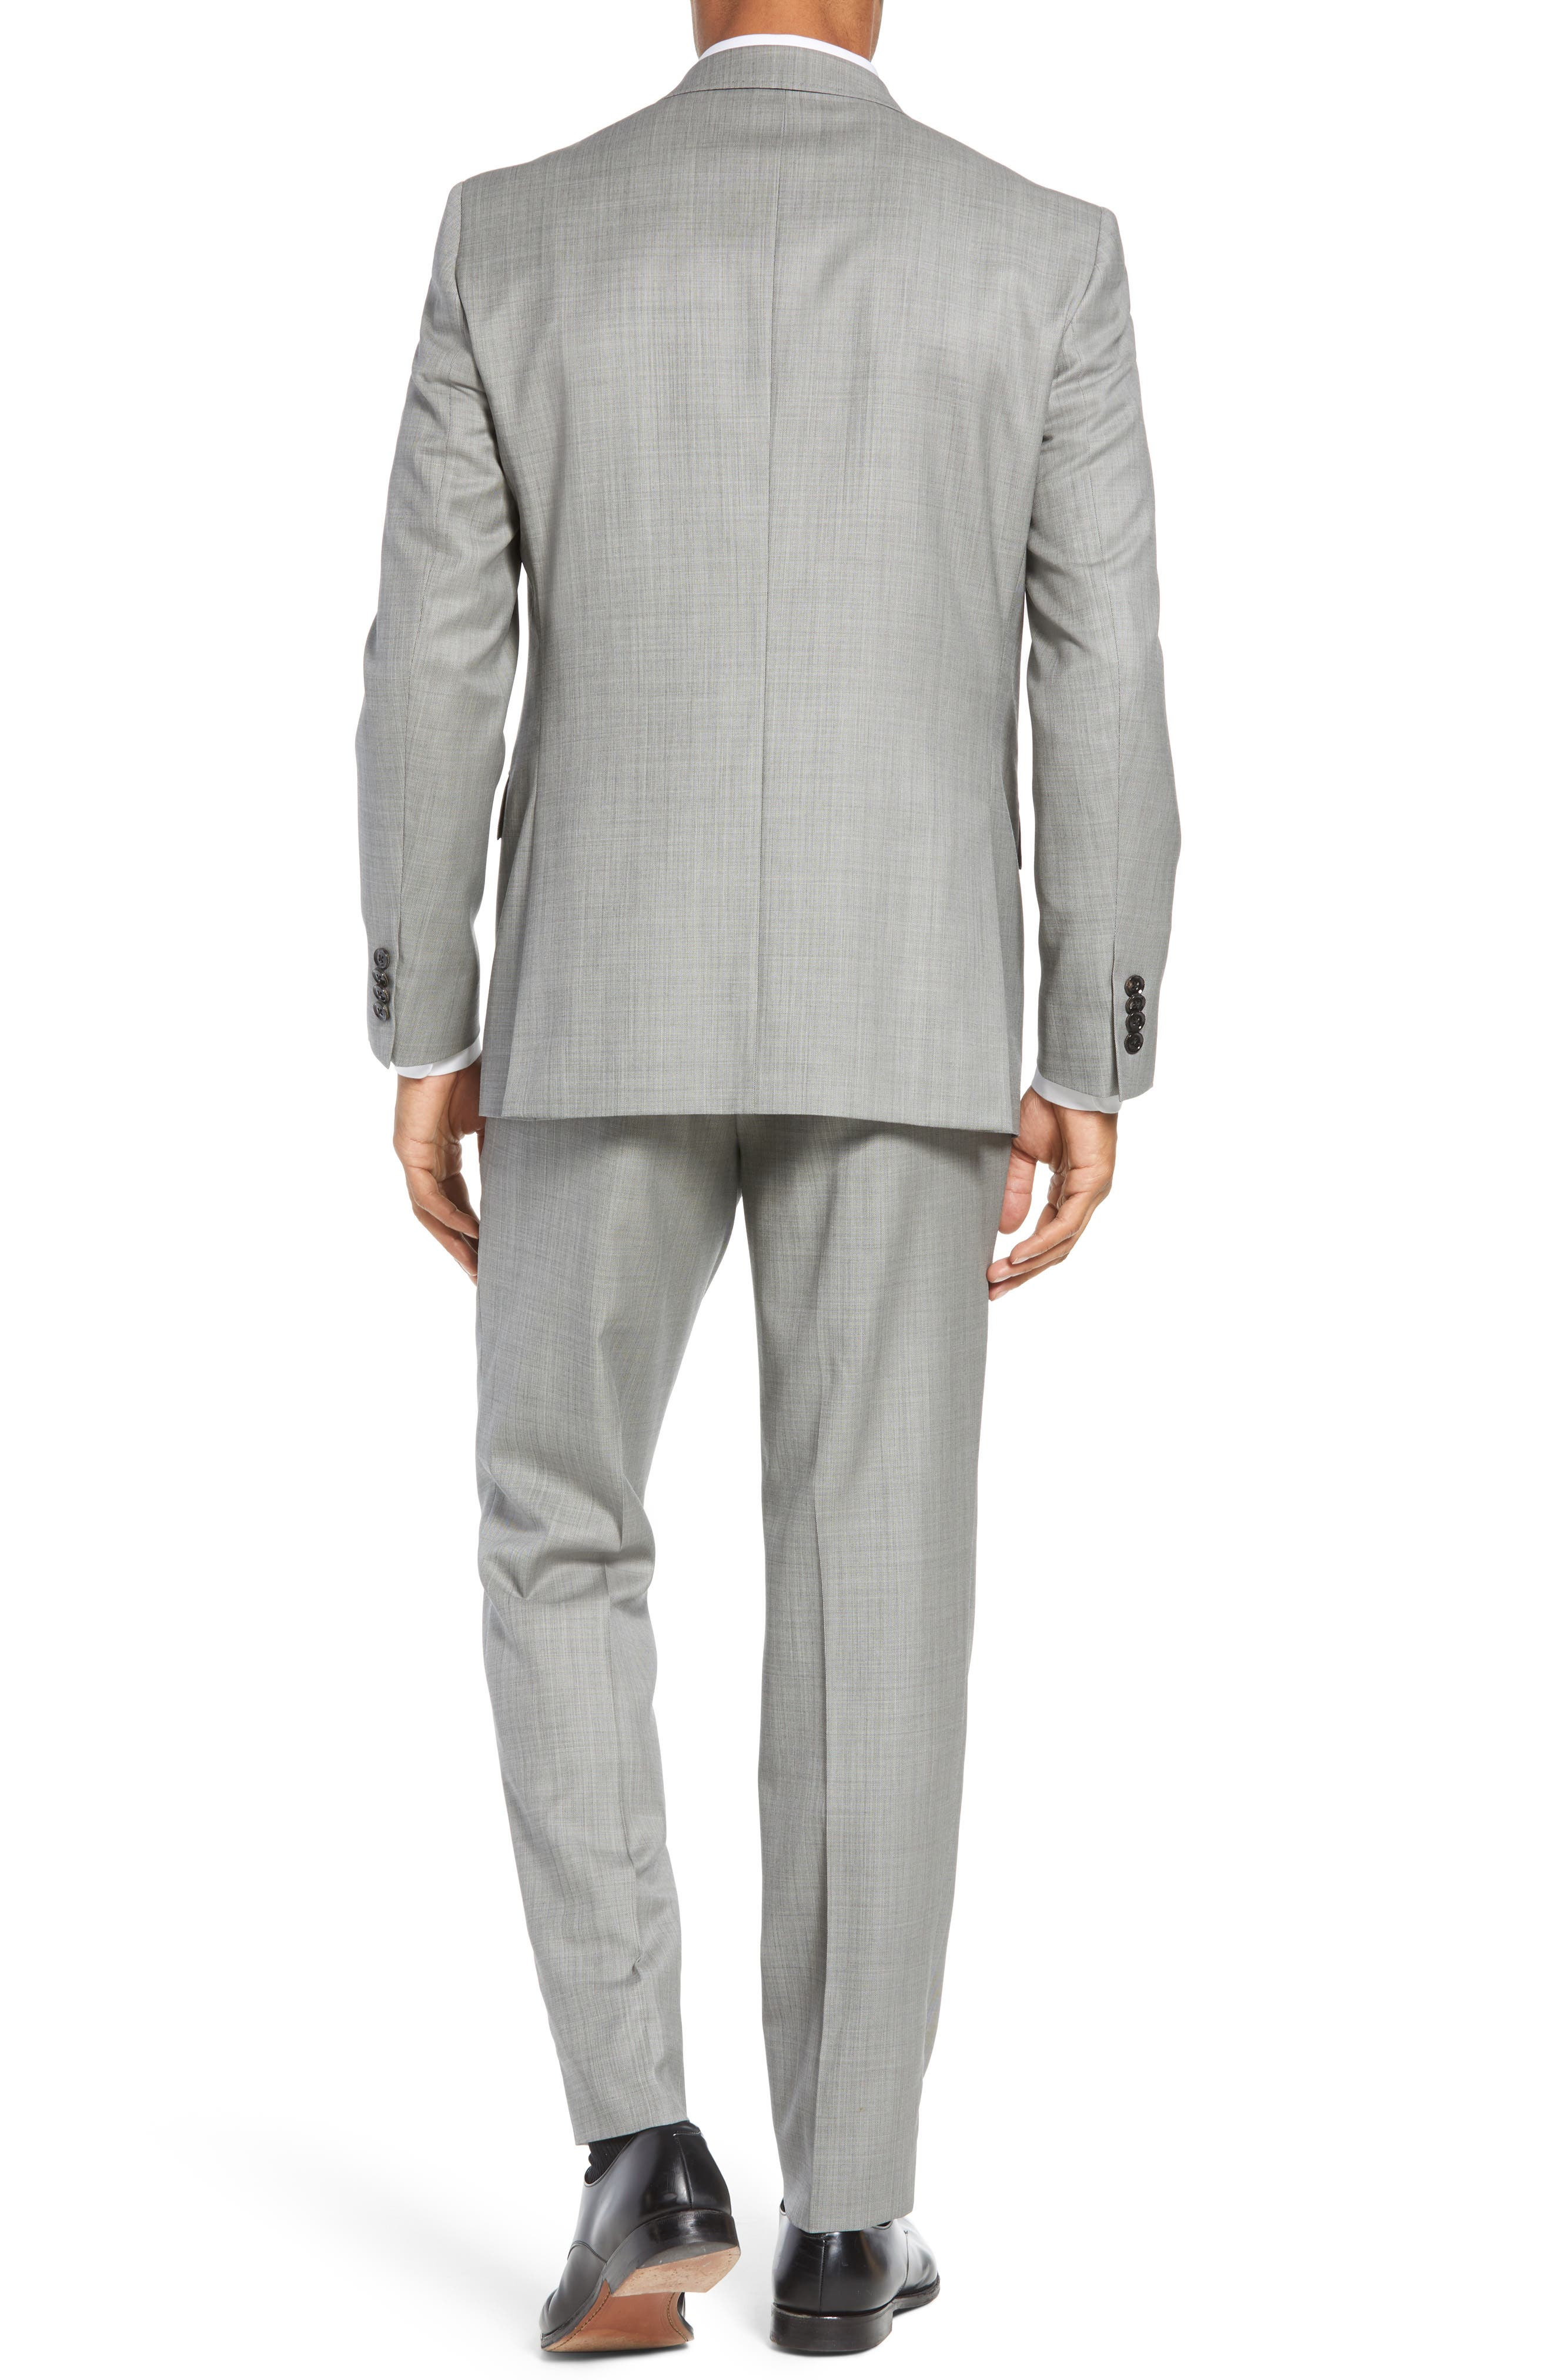 TED BAKER LONDON, Jay Trim Fit Solid Wool Suit, Alternate thumbnail 2, color, LIGHT GREY